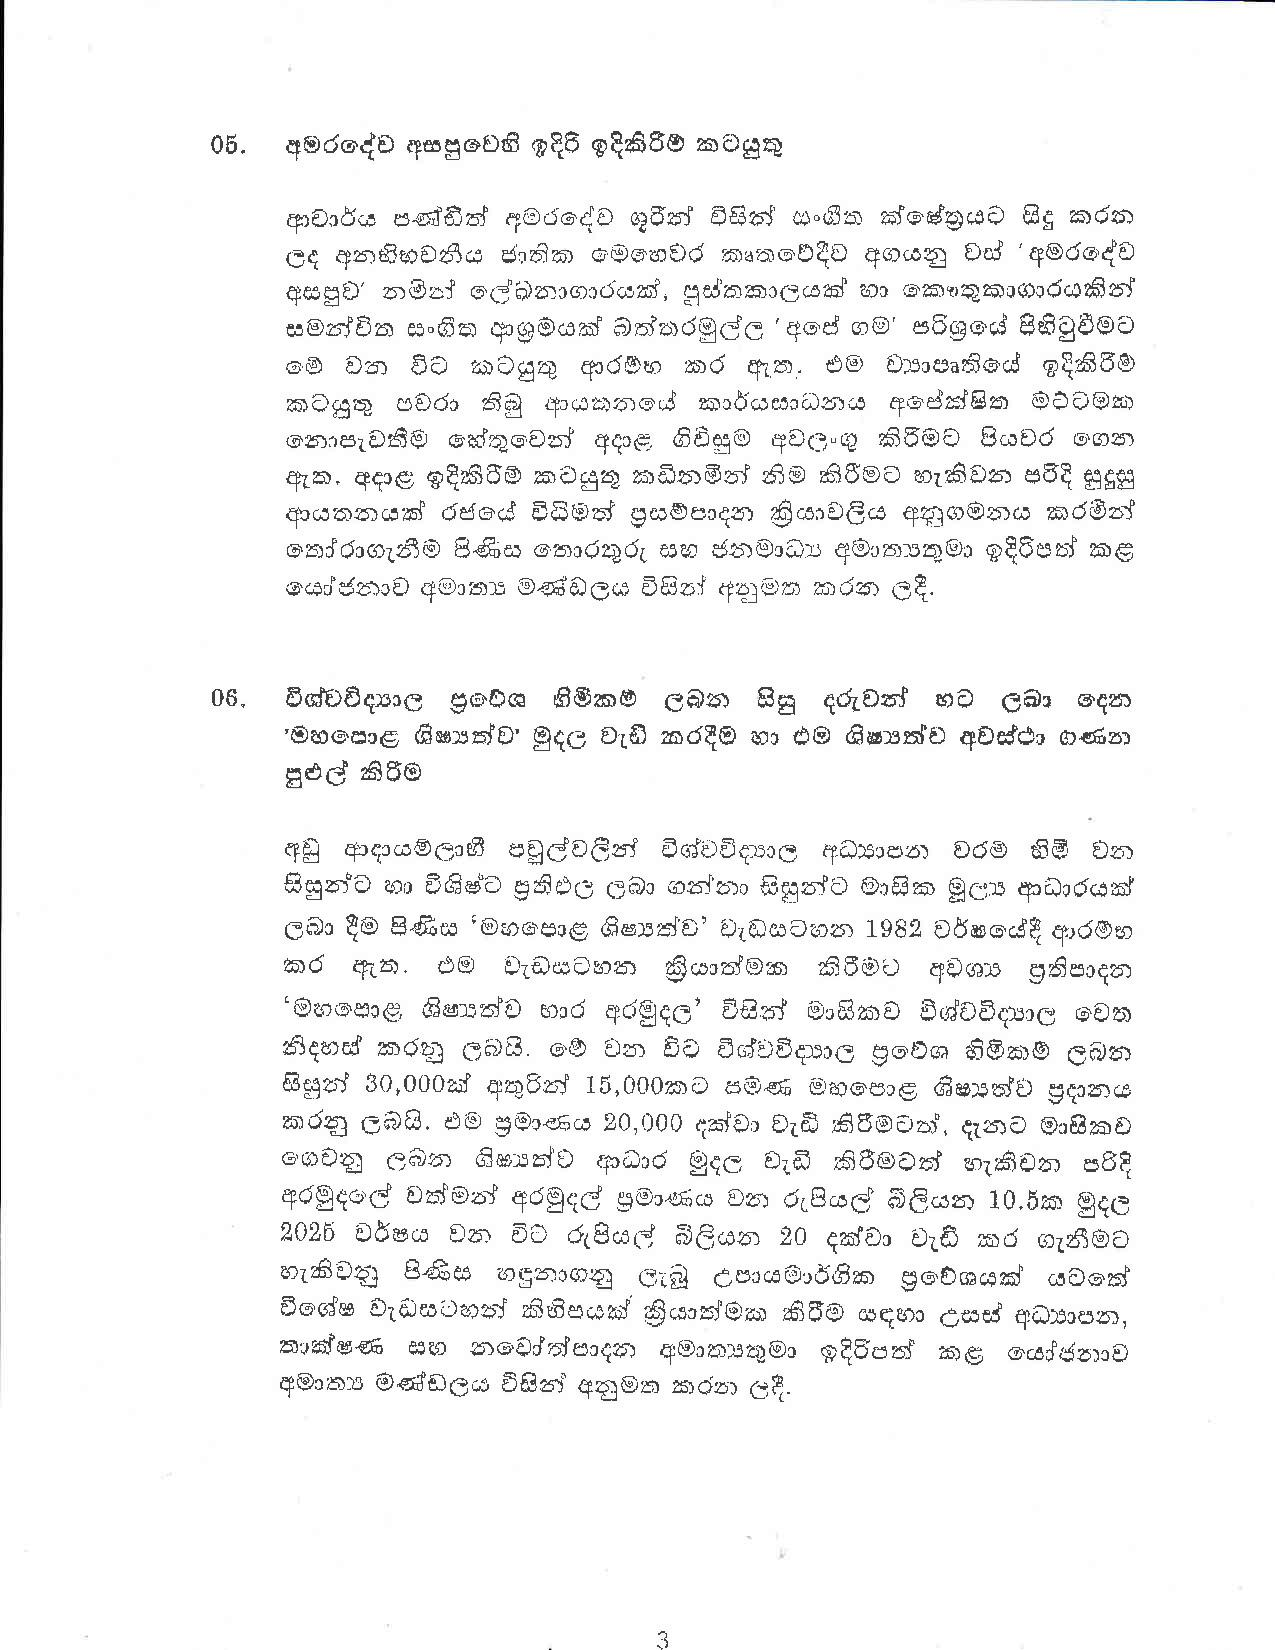 Cabinet Decision on 27.02.2020 page 003